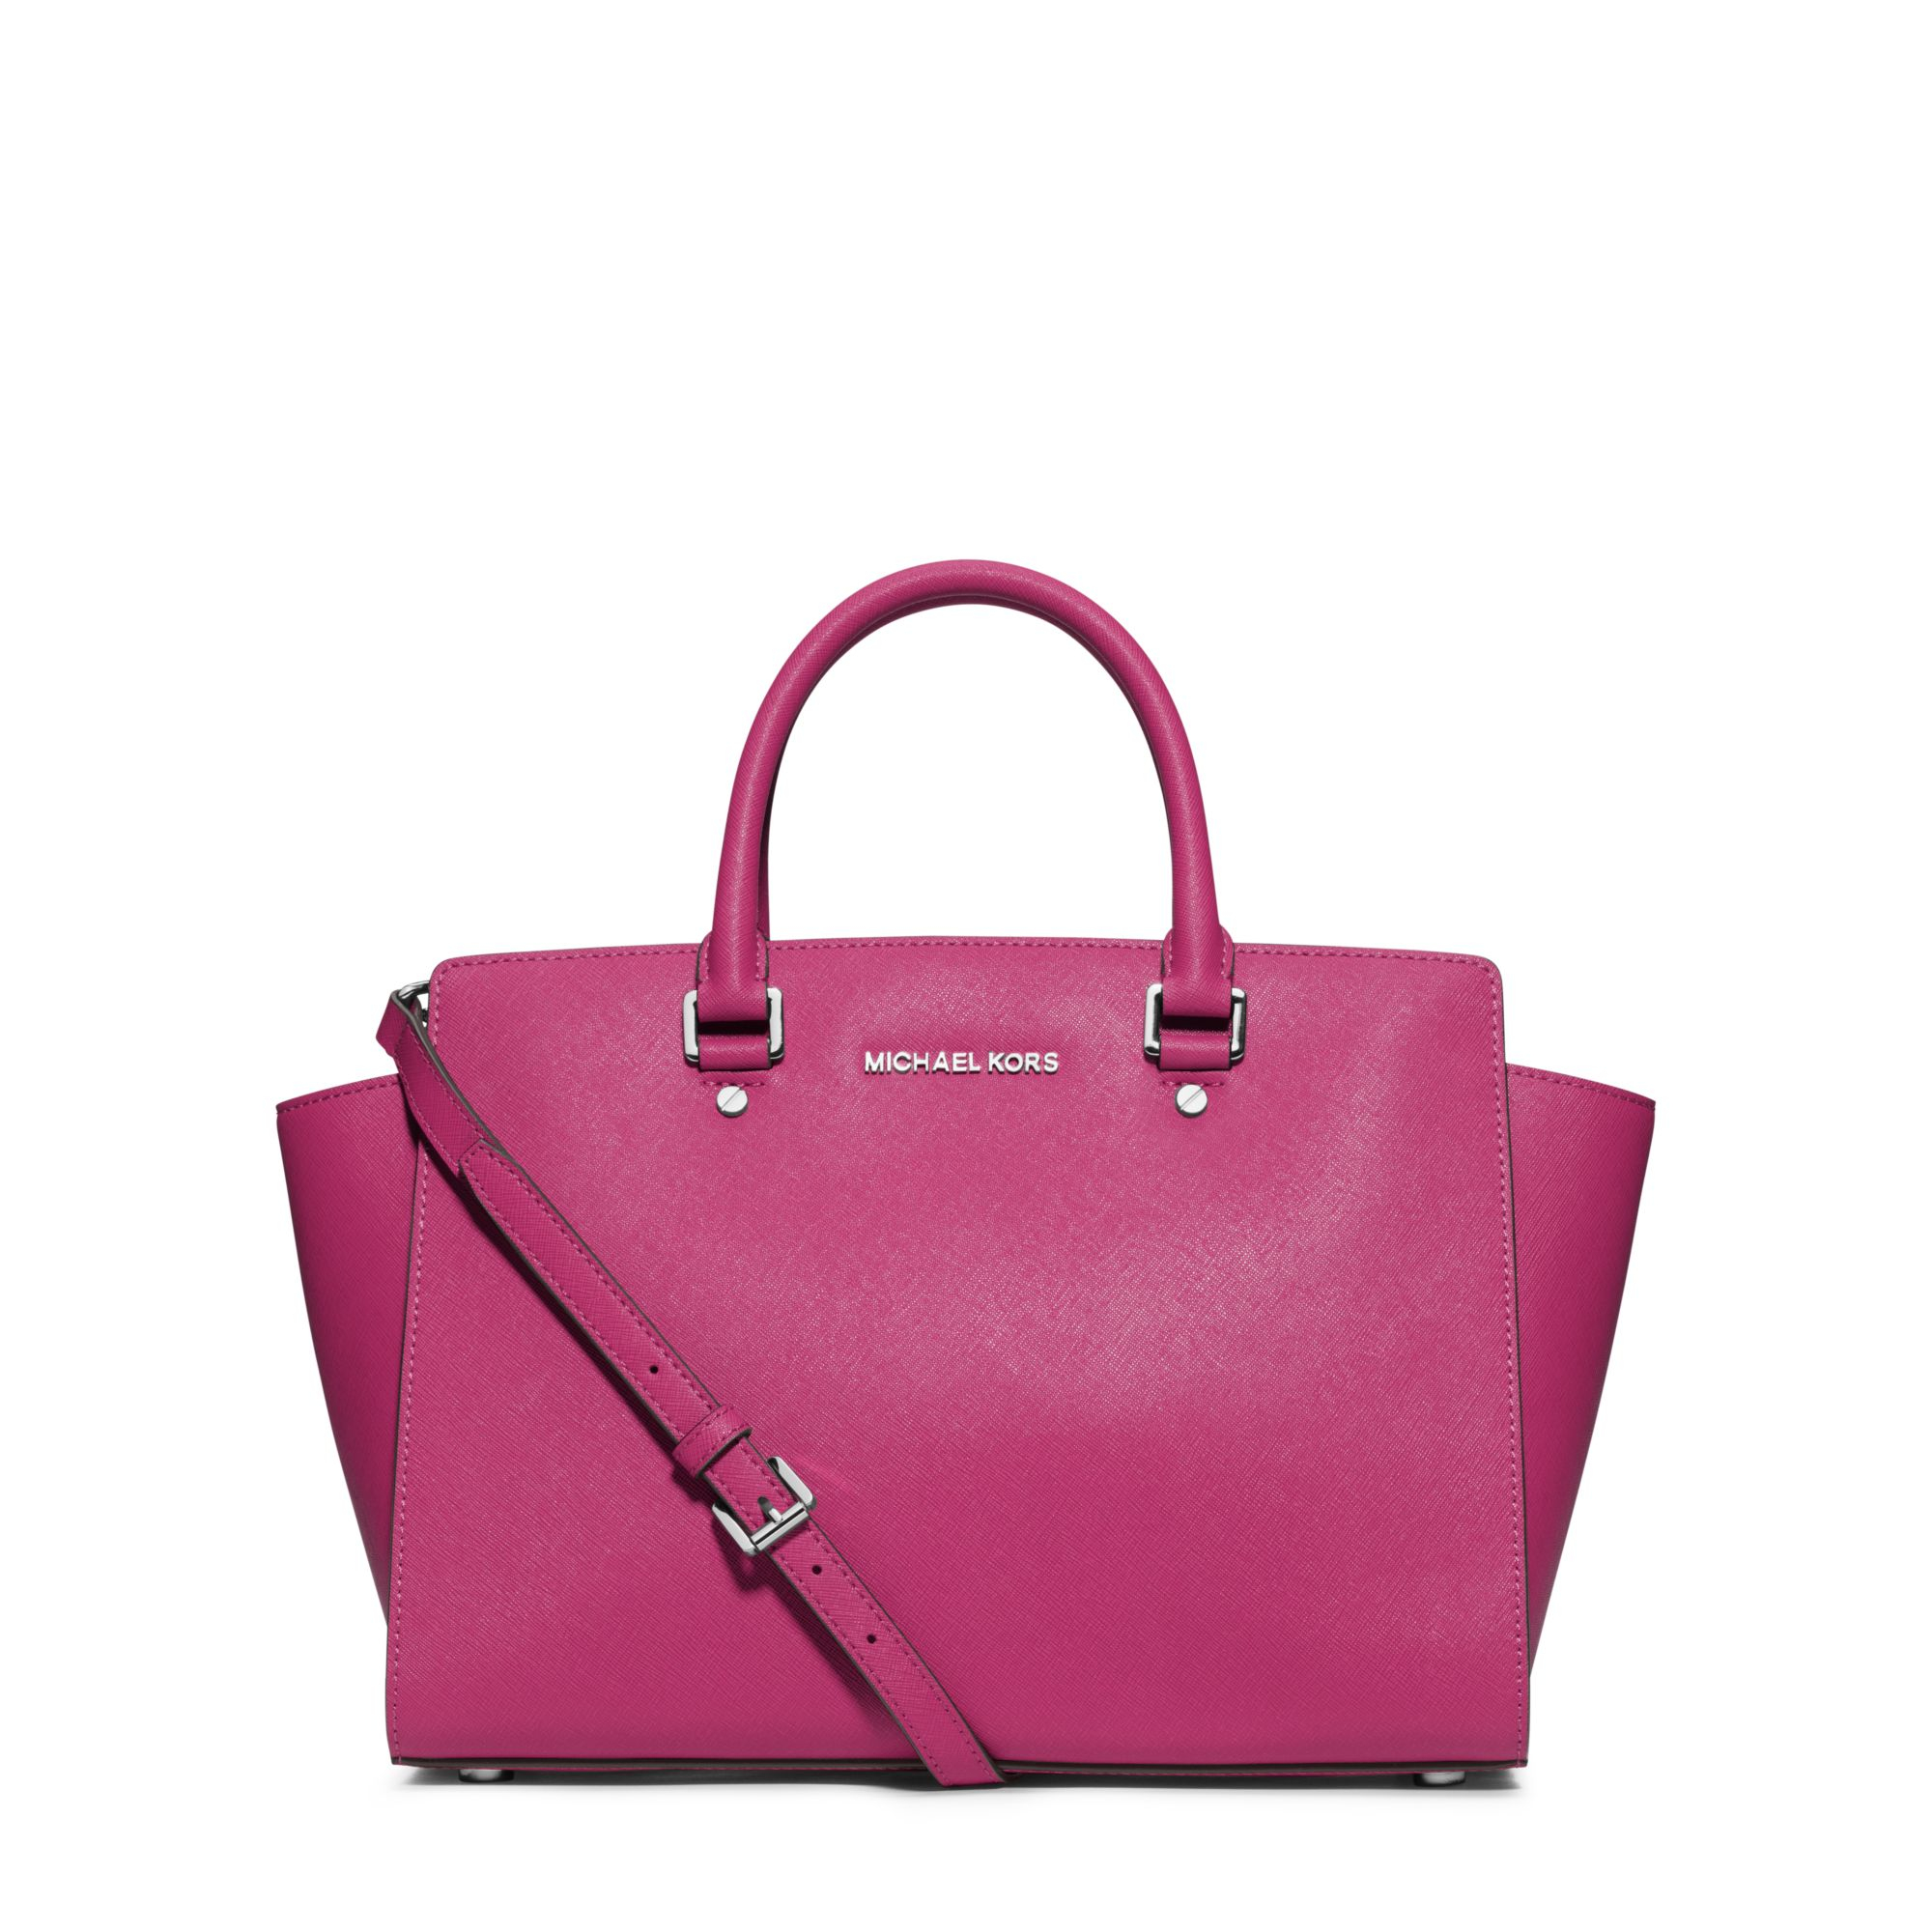 michael kors selma large saffiano leather satchel in pink lyst. Black Bedroom Furniture Sets. Home Design Ideas